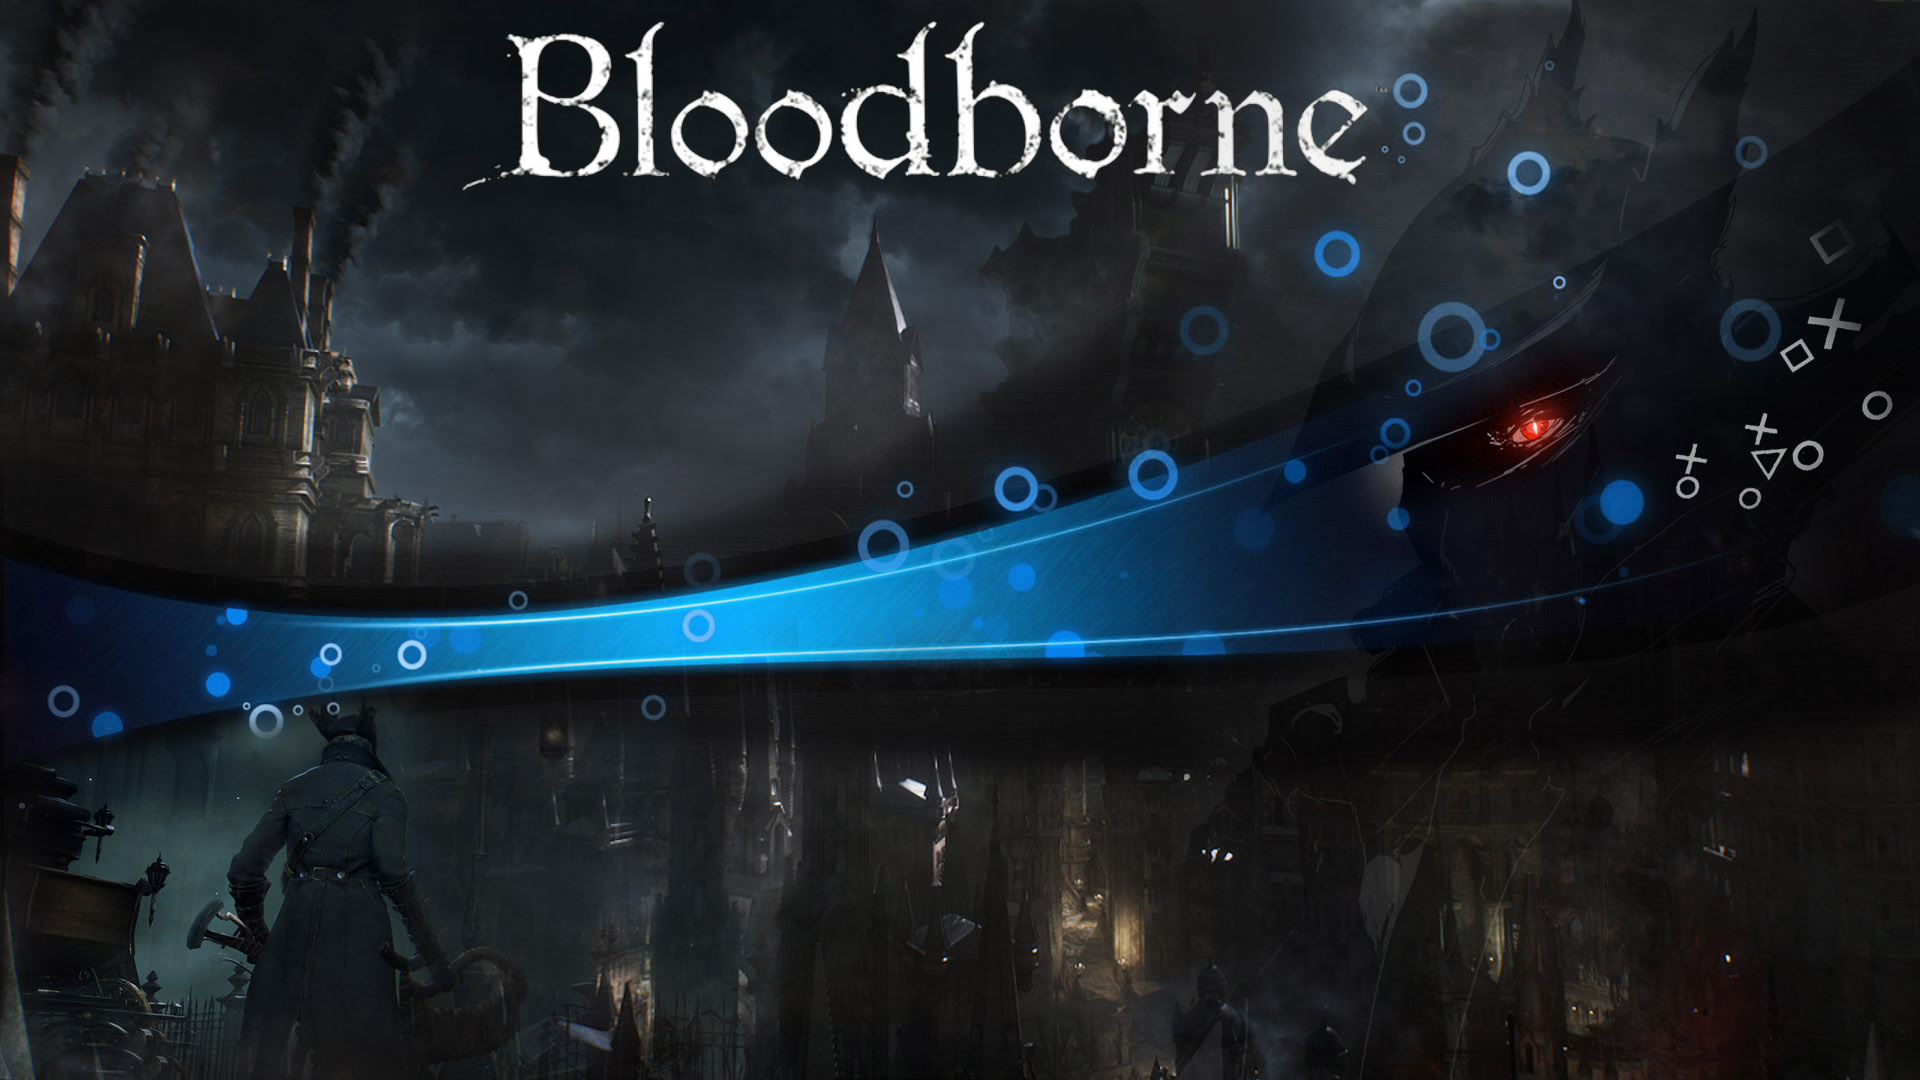 Black Ops Wallpaper Hd Bloodborne Wallpapers Pictures Images